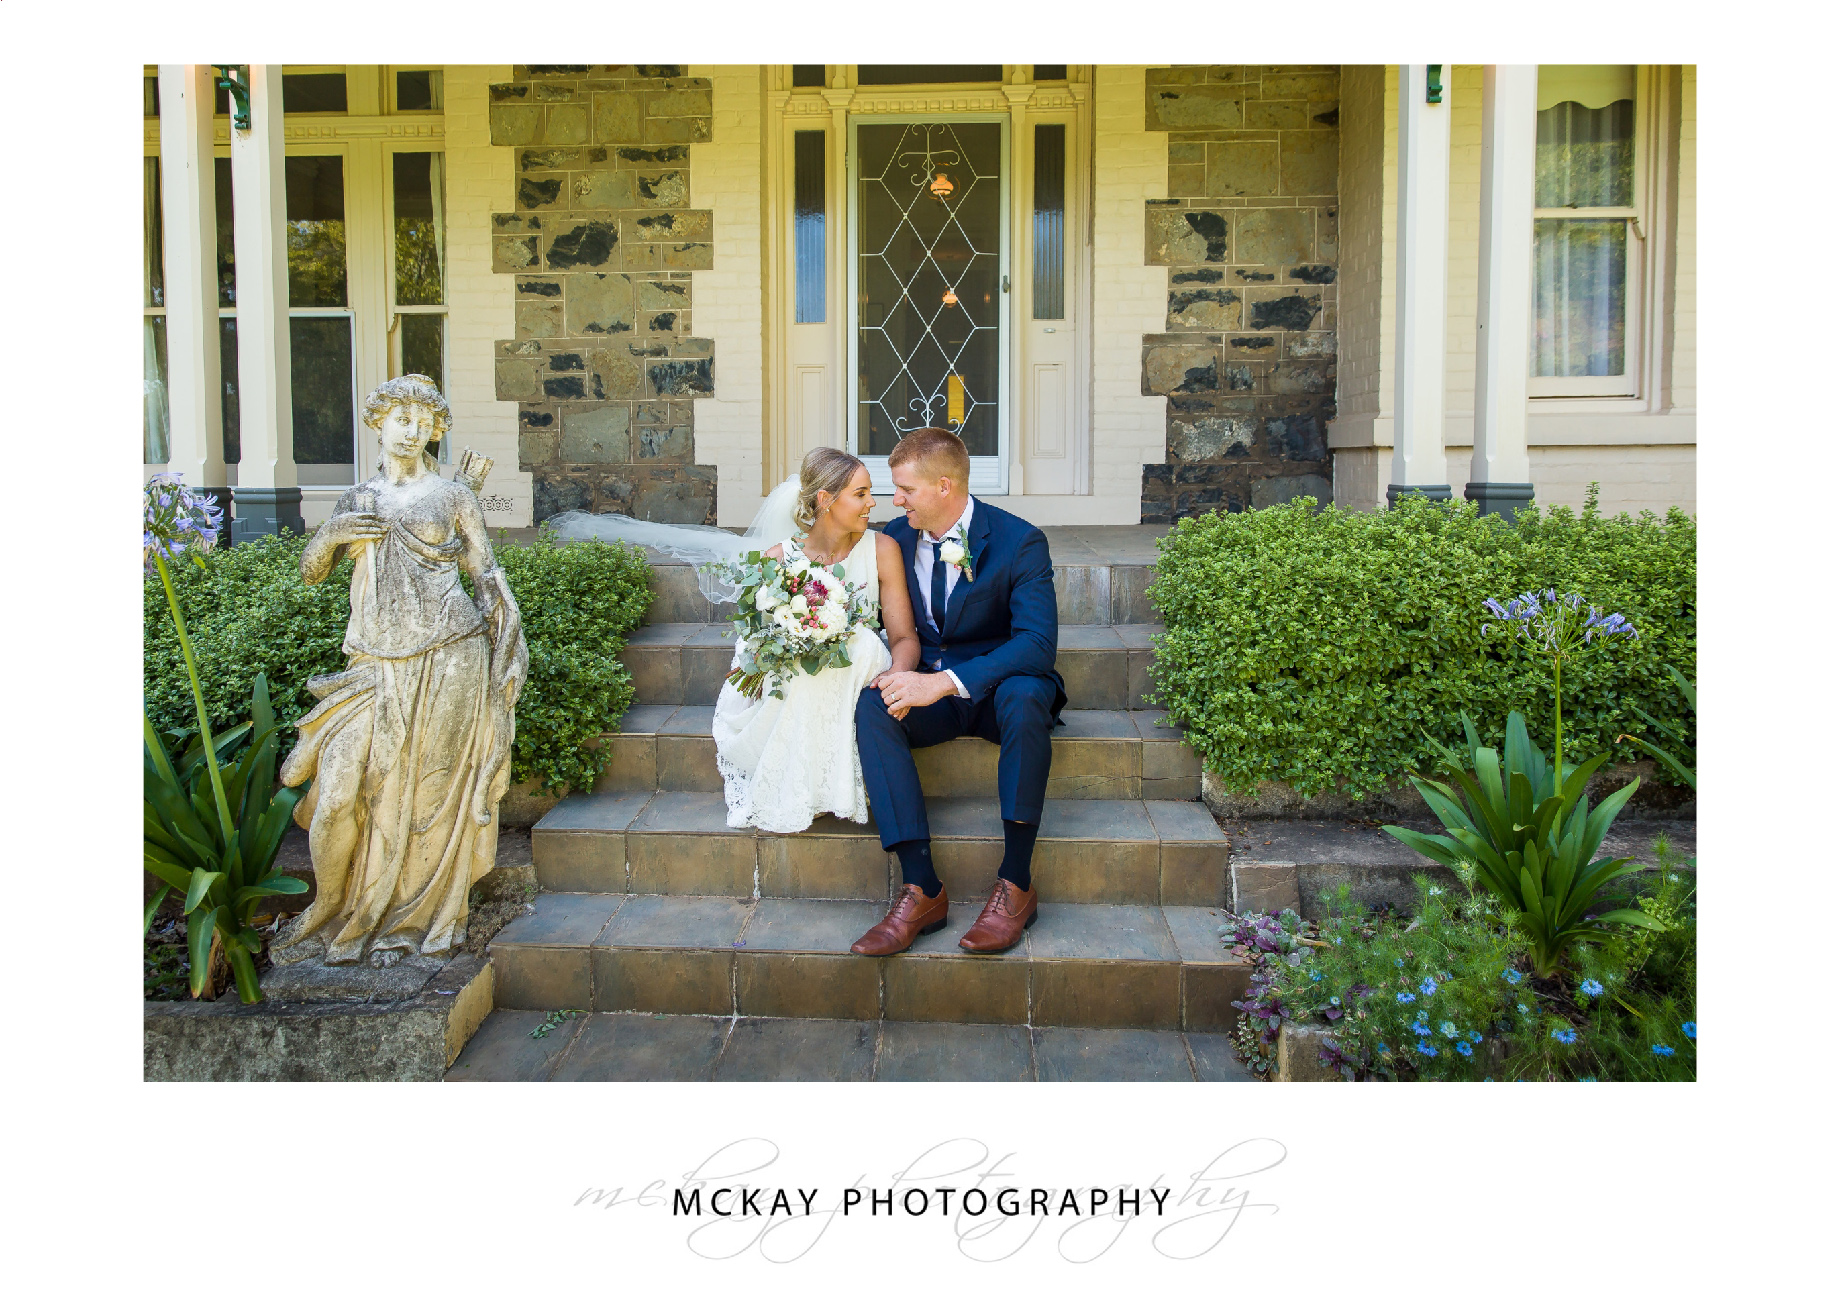 On the steps of the old homestead at Leeston wedding